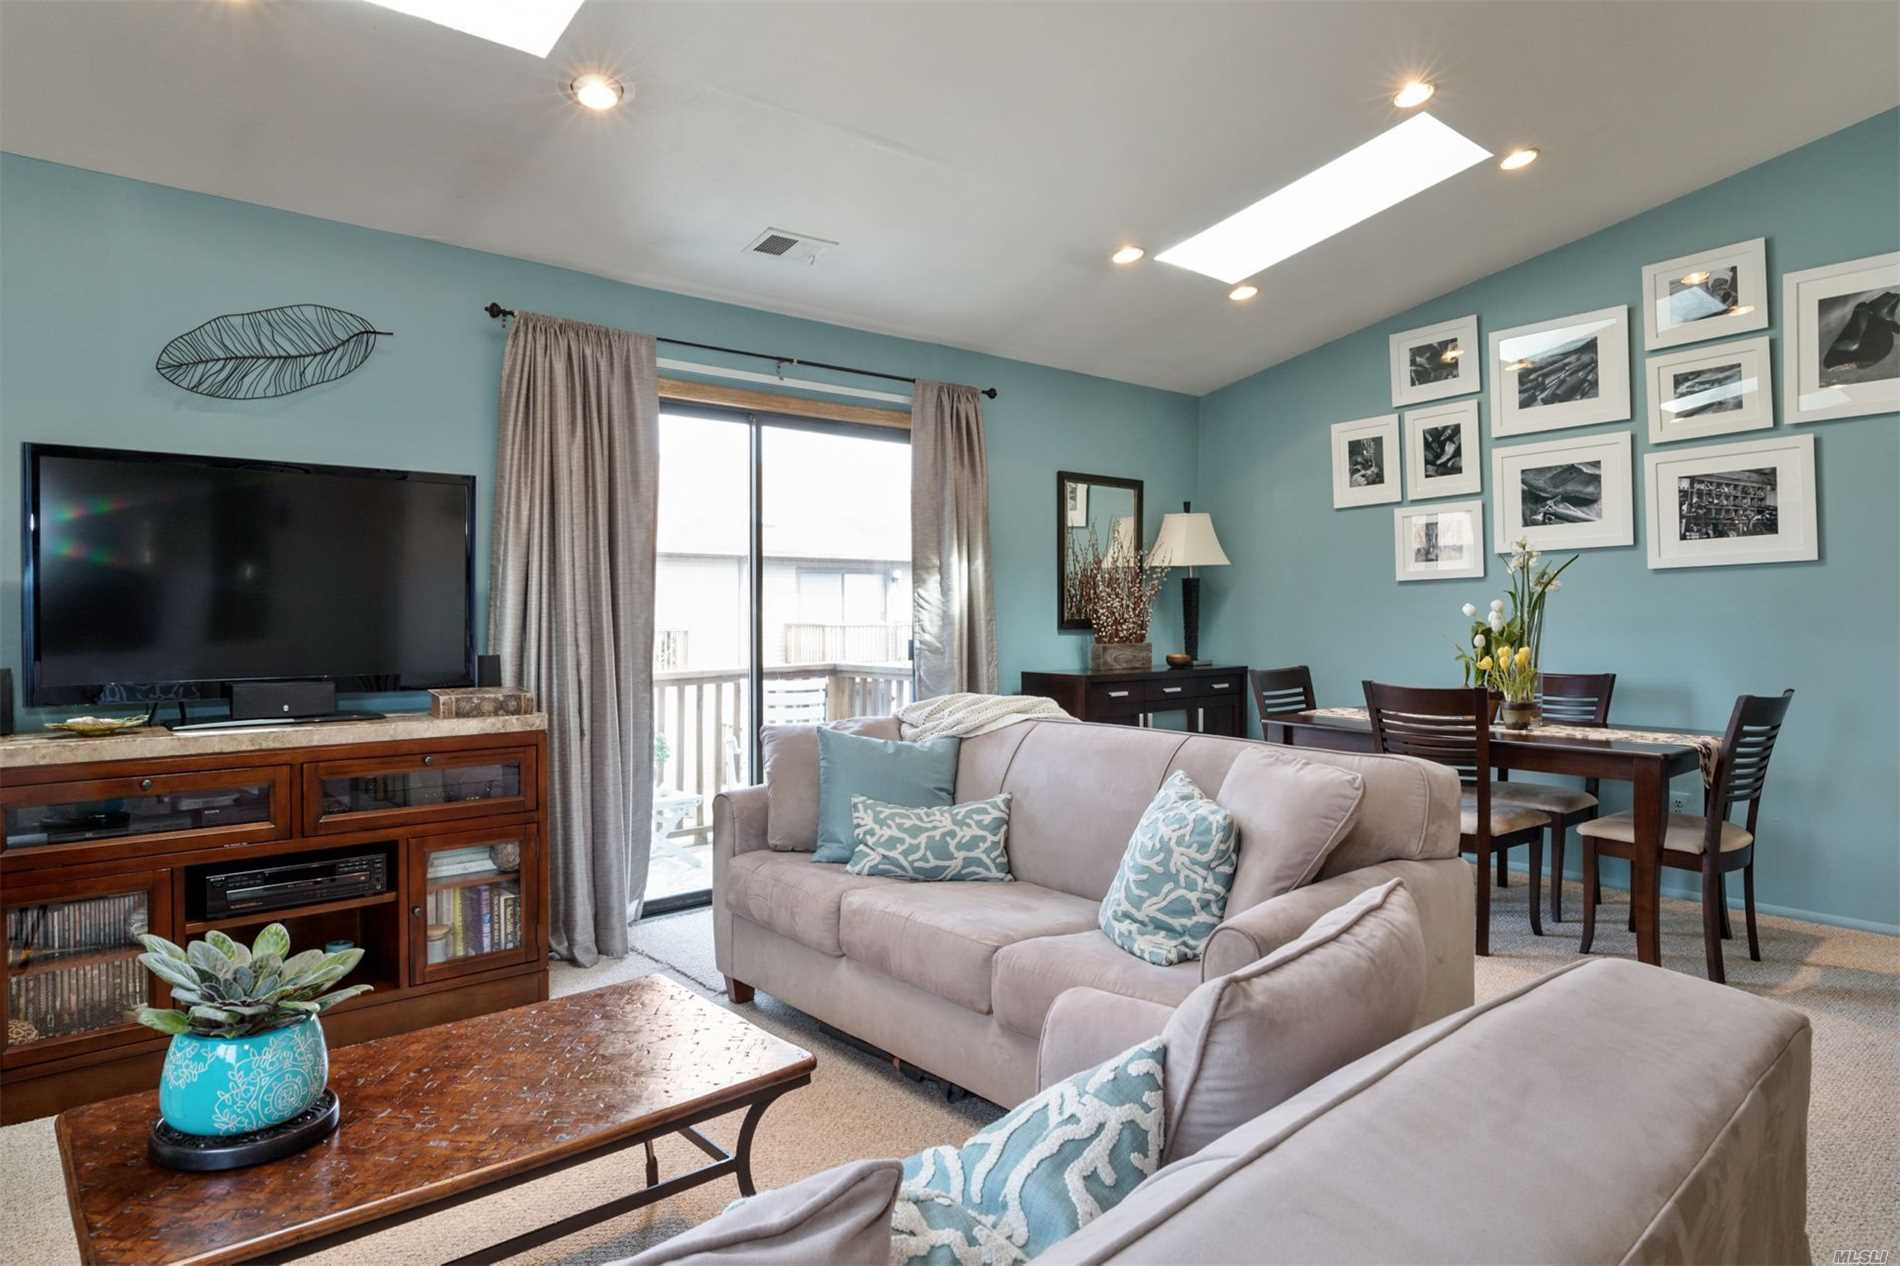 Community, Comfort, Convenience! Welcome to Luxury Living In This Pet Friendly, Bright, Updated Immaculate Coop! Chef Kitchen W/Granite Countertops, Custom Cabinetry, SS Appl, Washer/Dryer, Open Floor Plan, Large BR With Ensuite & Walk In Closet, Terrace, Storage Loft, Closets Galore! Gated Community W/Pools, New Gym, Tennis, Basketball, Social Room, etc! Near LIRR, Shops, Restaurants, etc! Ample Parking! Do Not Miss This Extraordinary Opportunity! This Is An Immaculate Home Ready To Move Into!